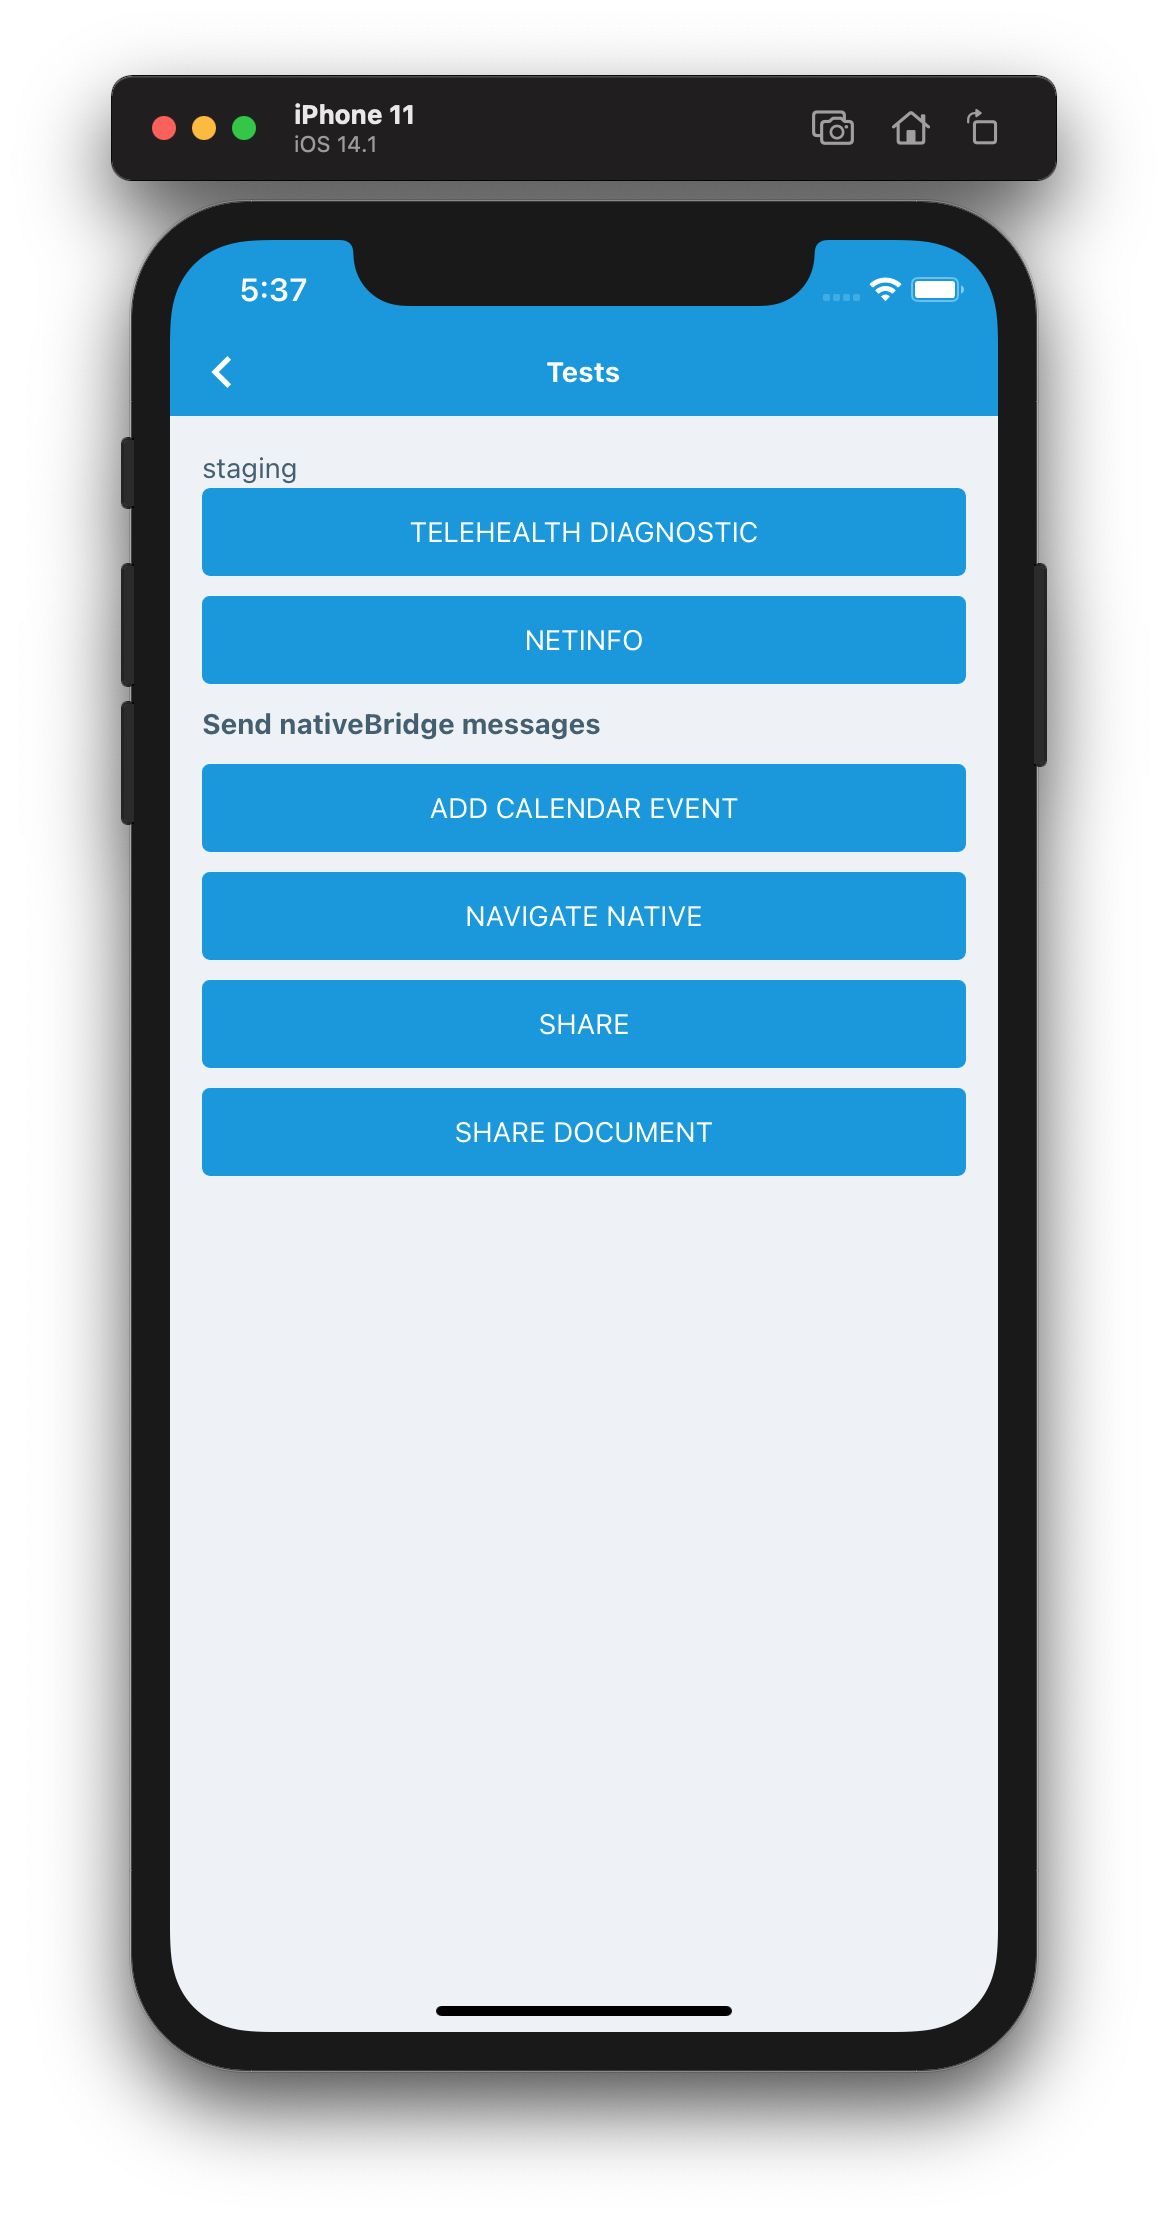 Test screen used by Detox to test native features of the patient application